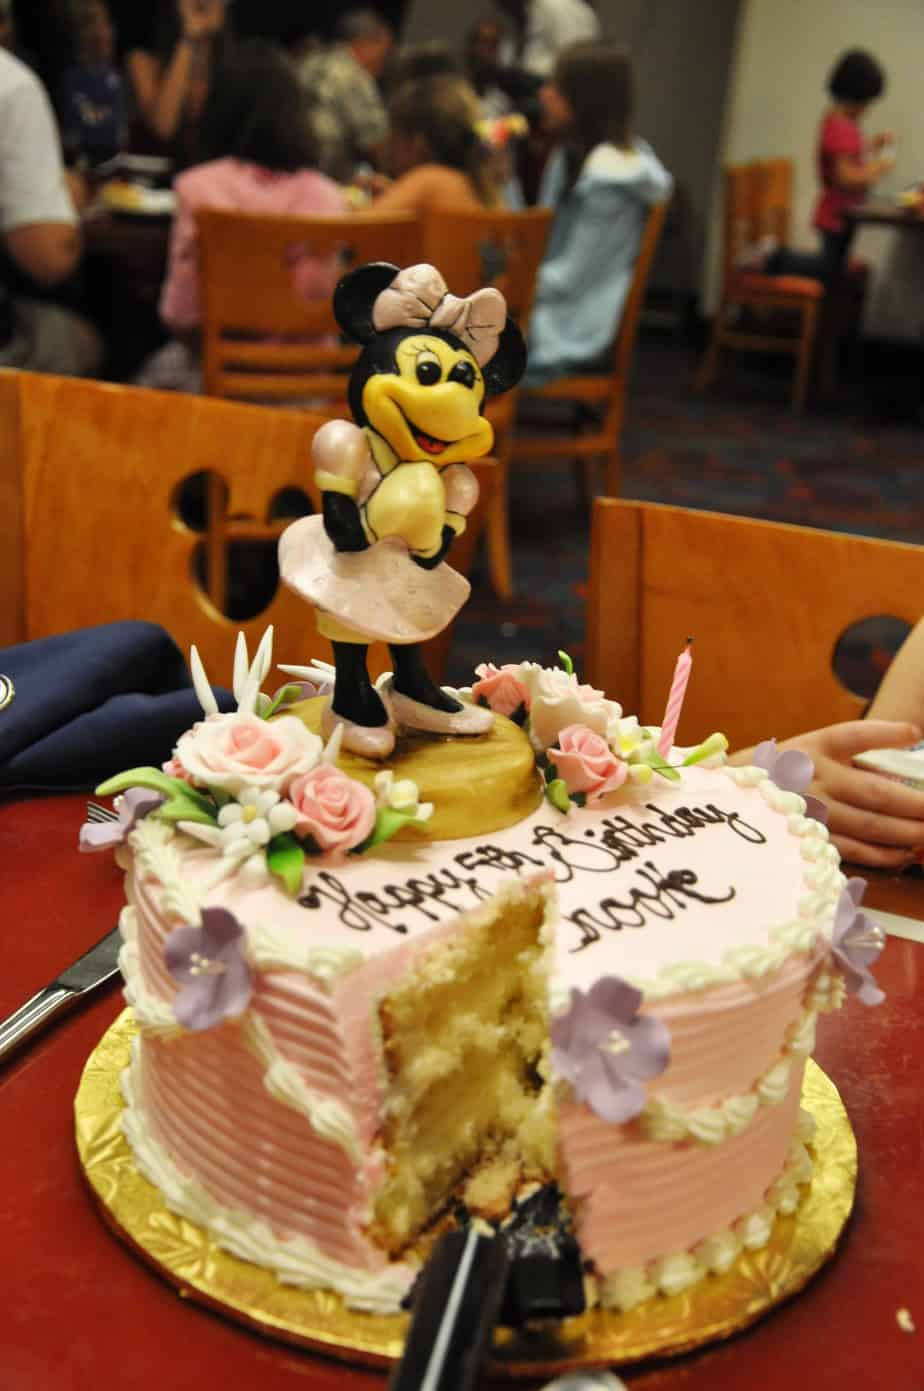 Wondrous Video Celebrating Your Birthday In Style At Disney World Personalised Birthday Cards Veneteletsinfo